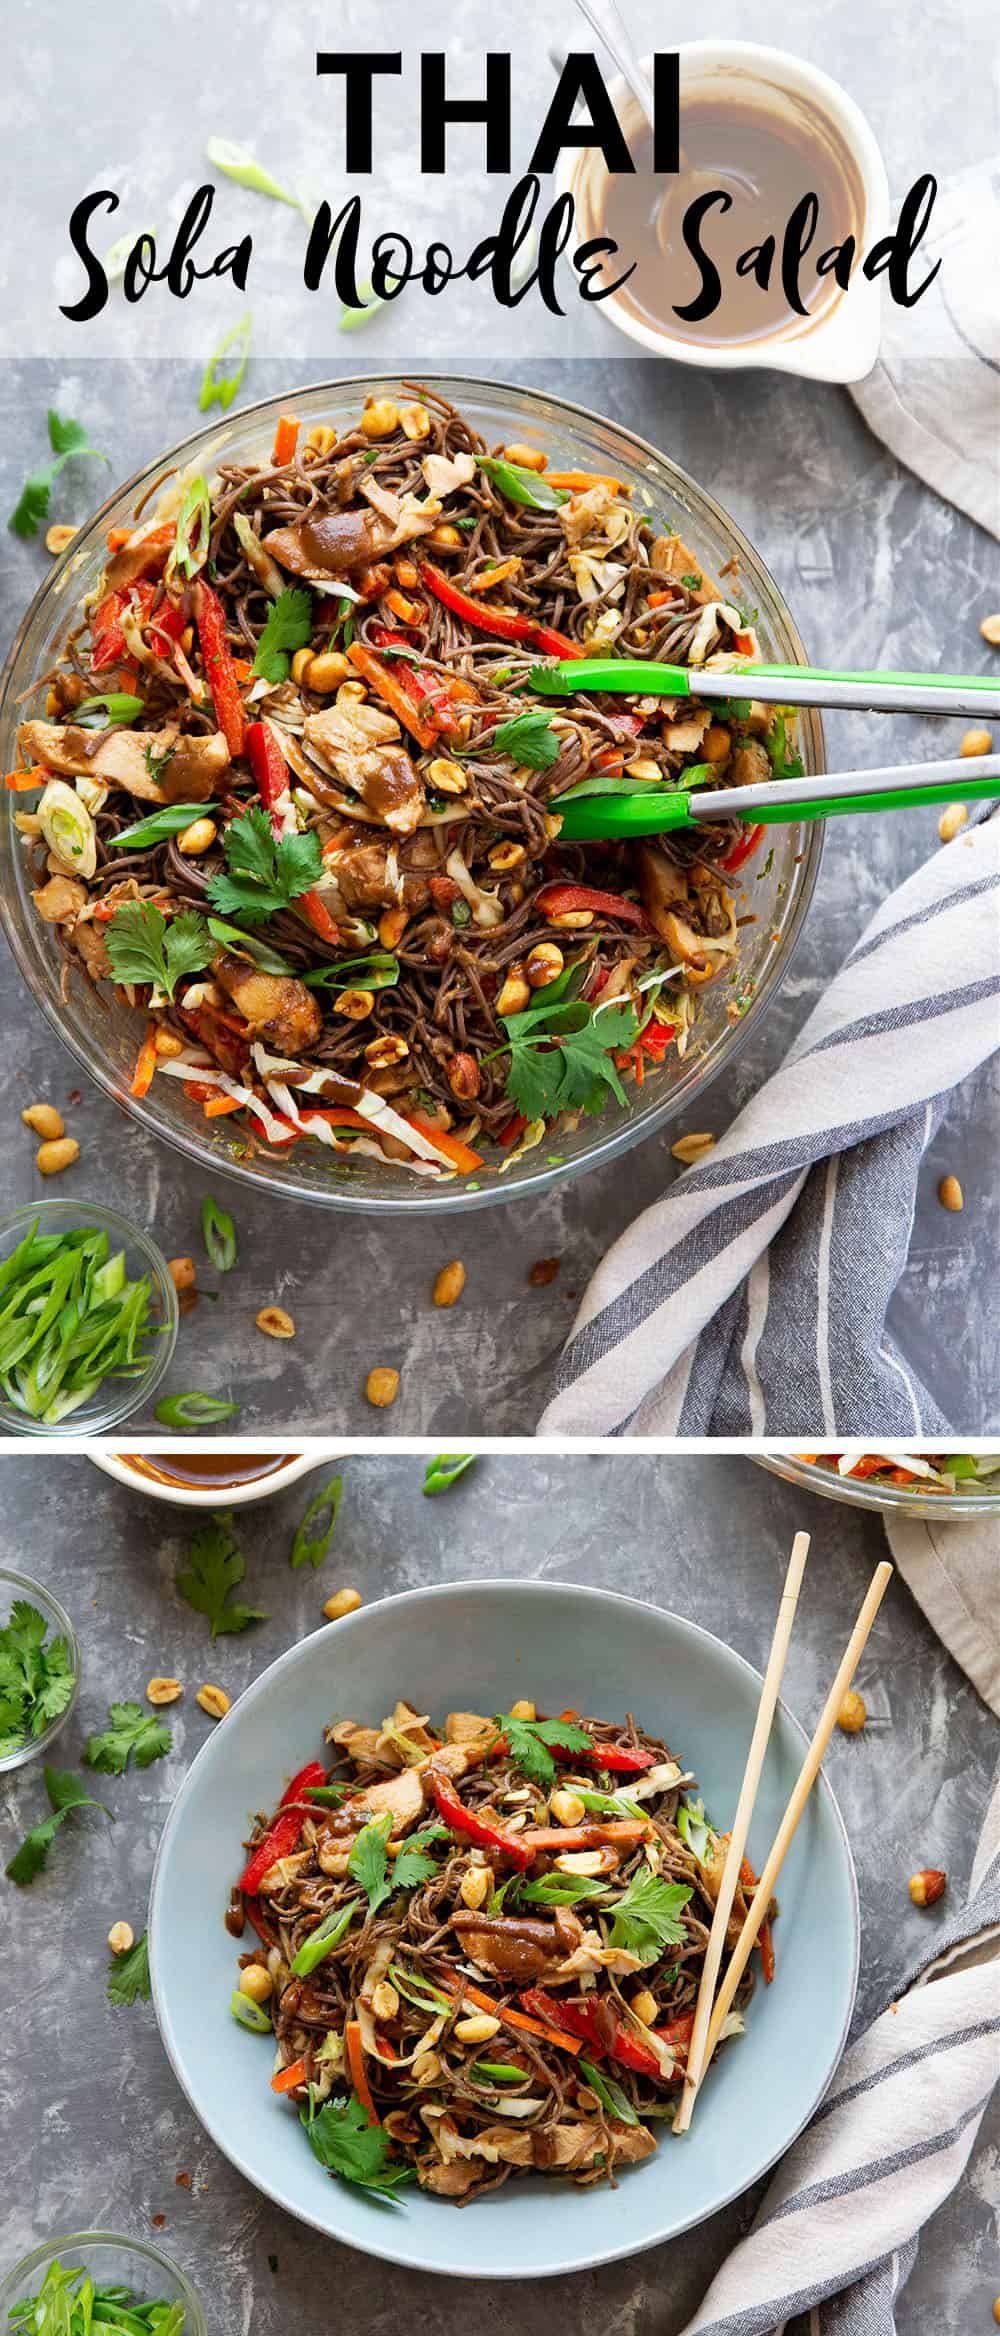 Thai soba noodle salad is packed with a rainbow of fresh veggies, tender buckwheat soba noodles, juicy peanut grilled chicken, and a creamy peanut dressing.